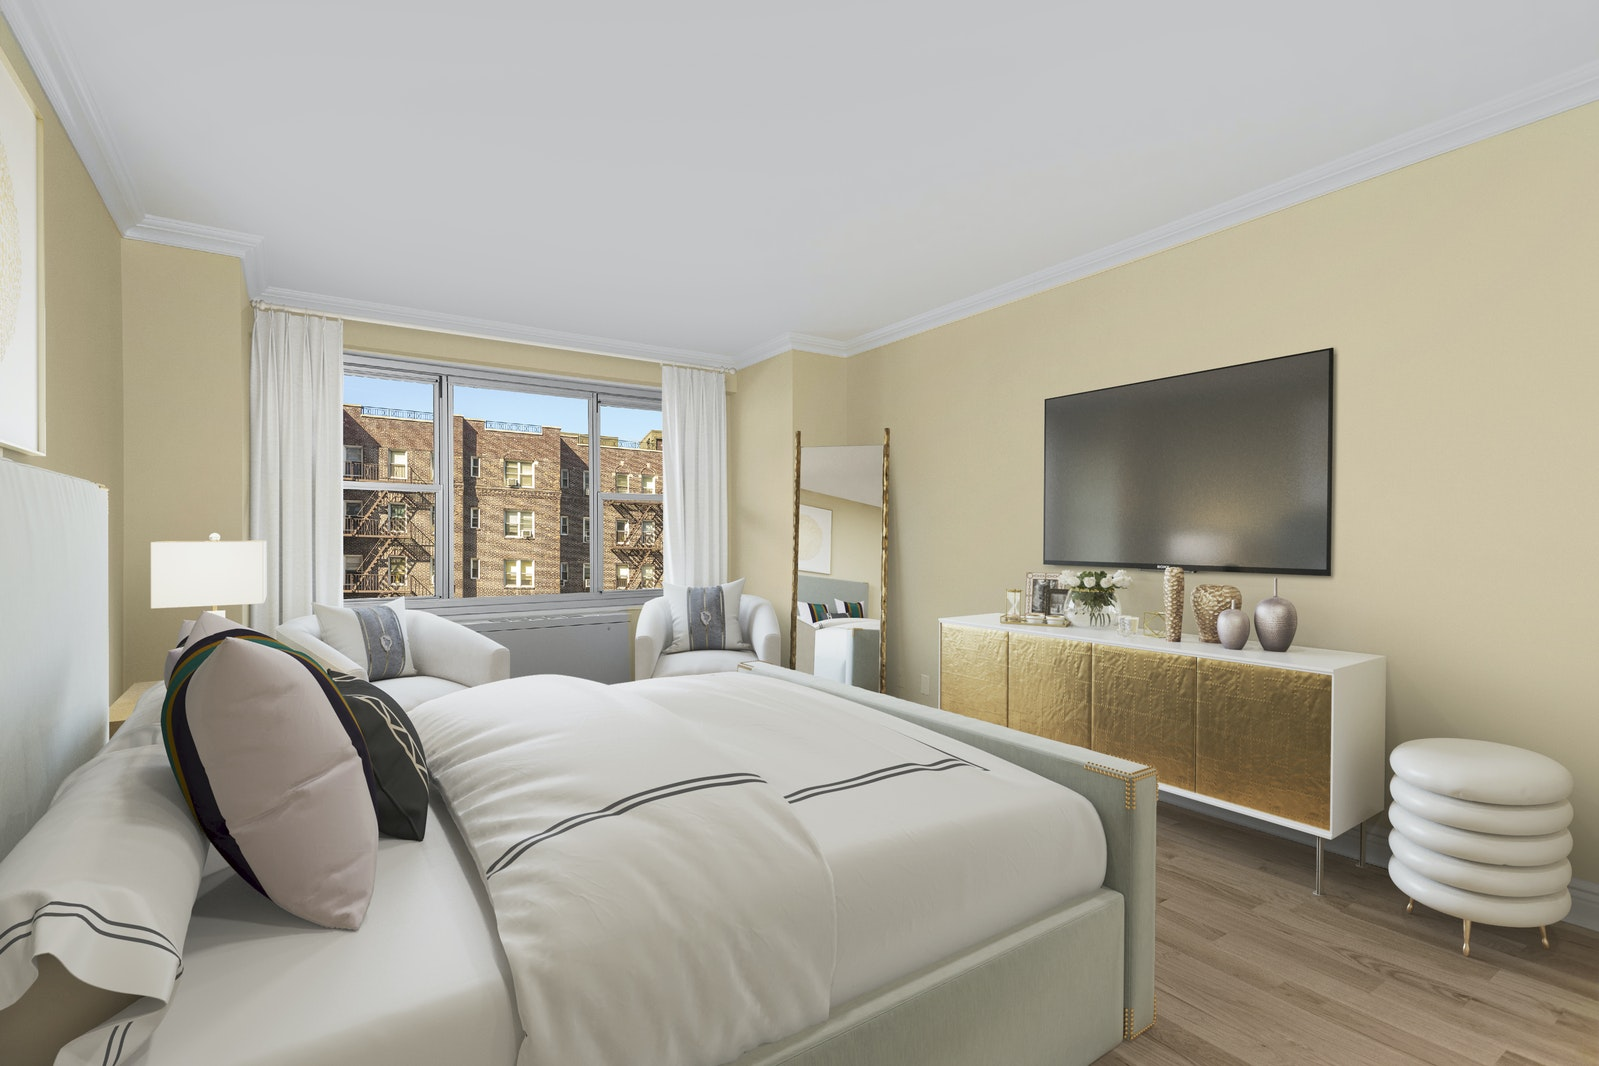 Apartment for sale at 110-11 Queens Blvd, Apt 4G